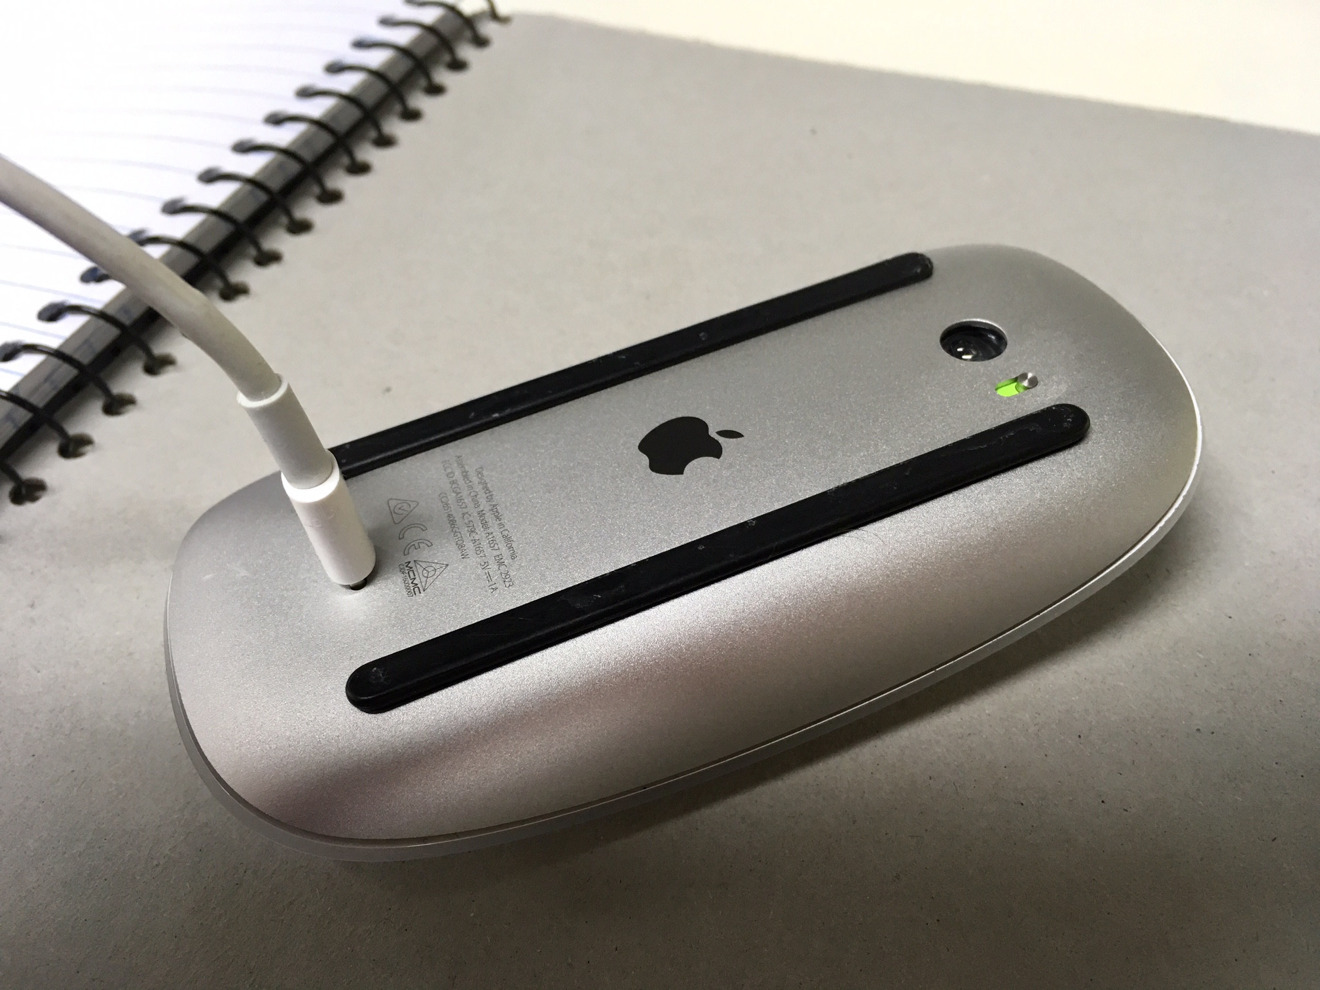 A Magic Mouse 2 being recharged